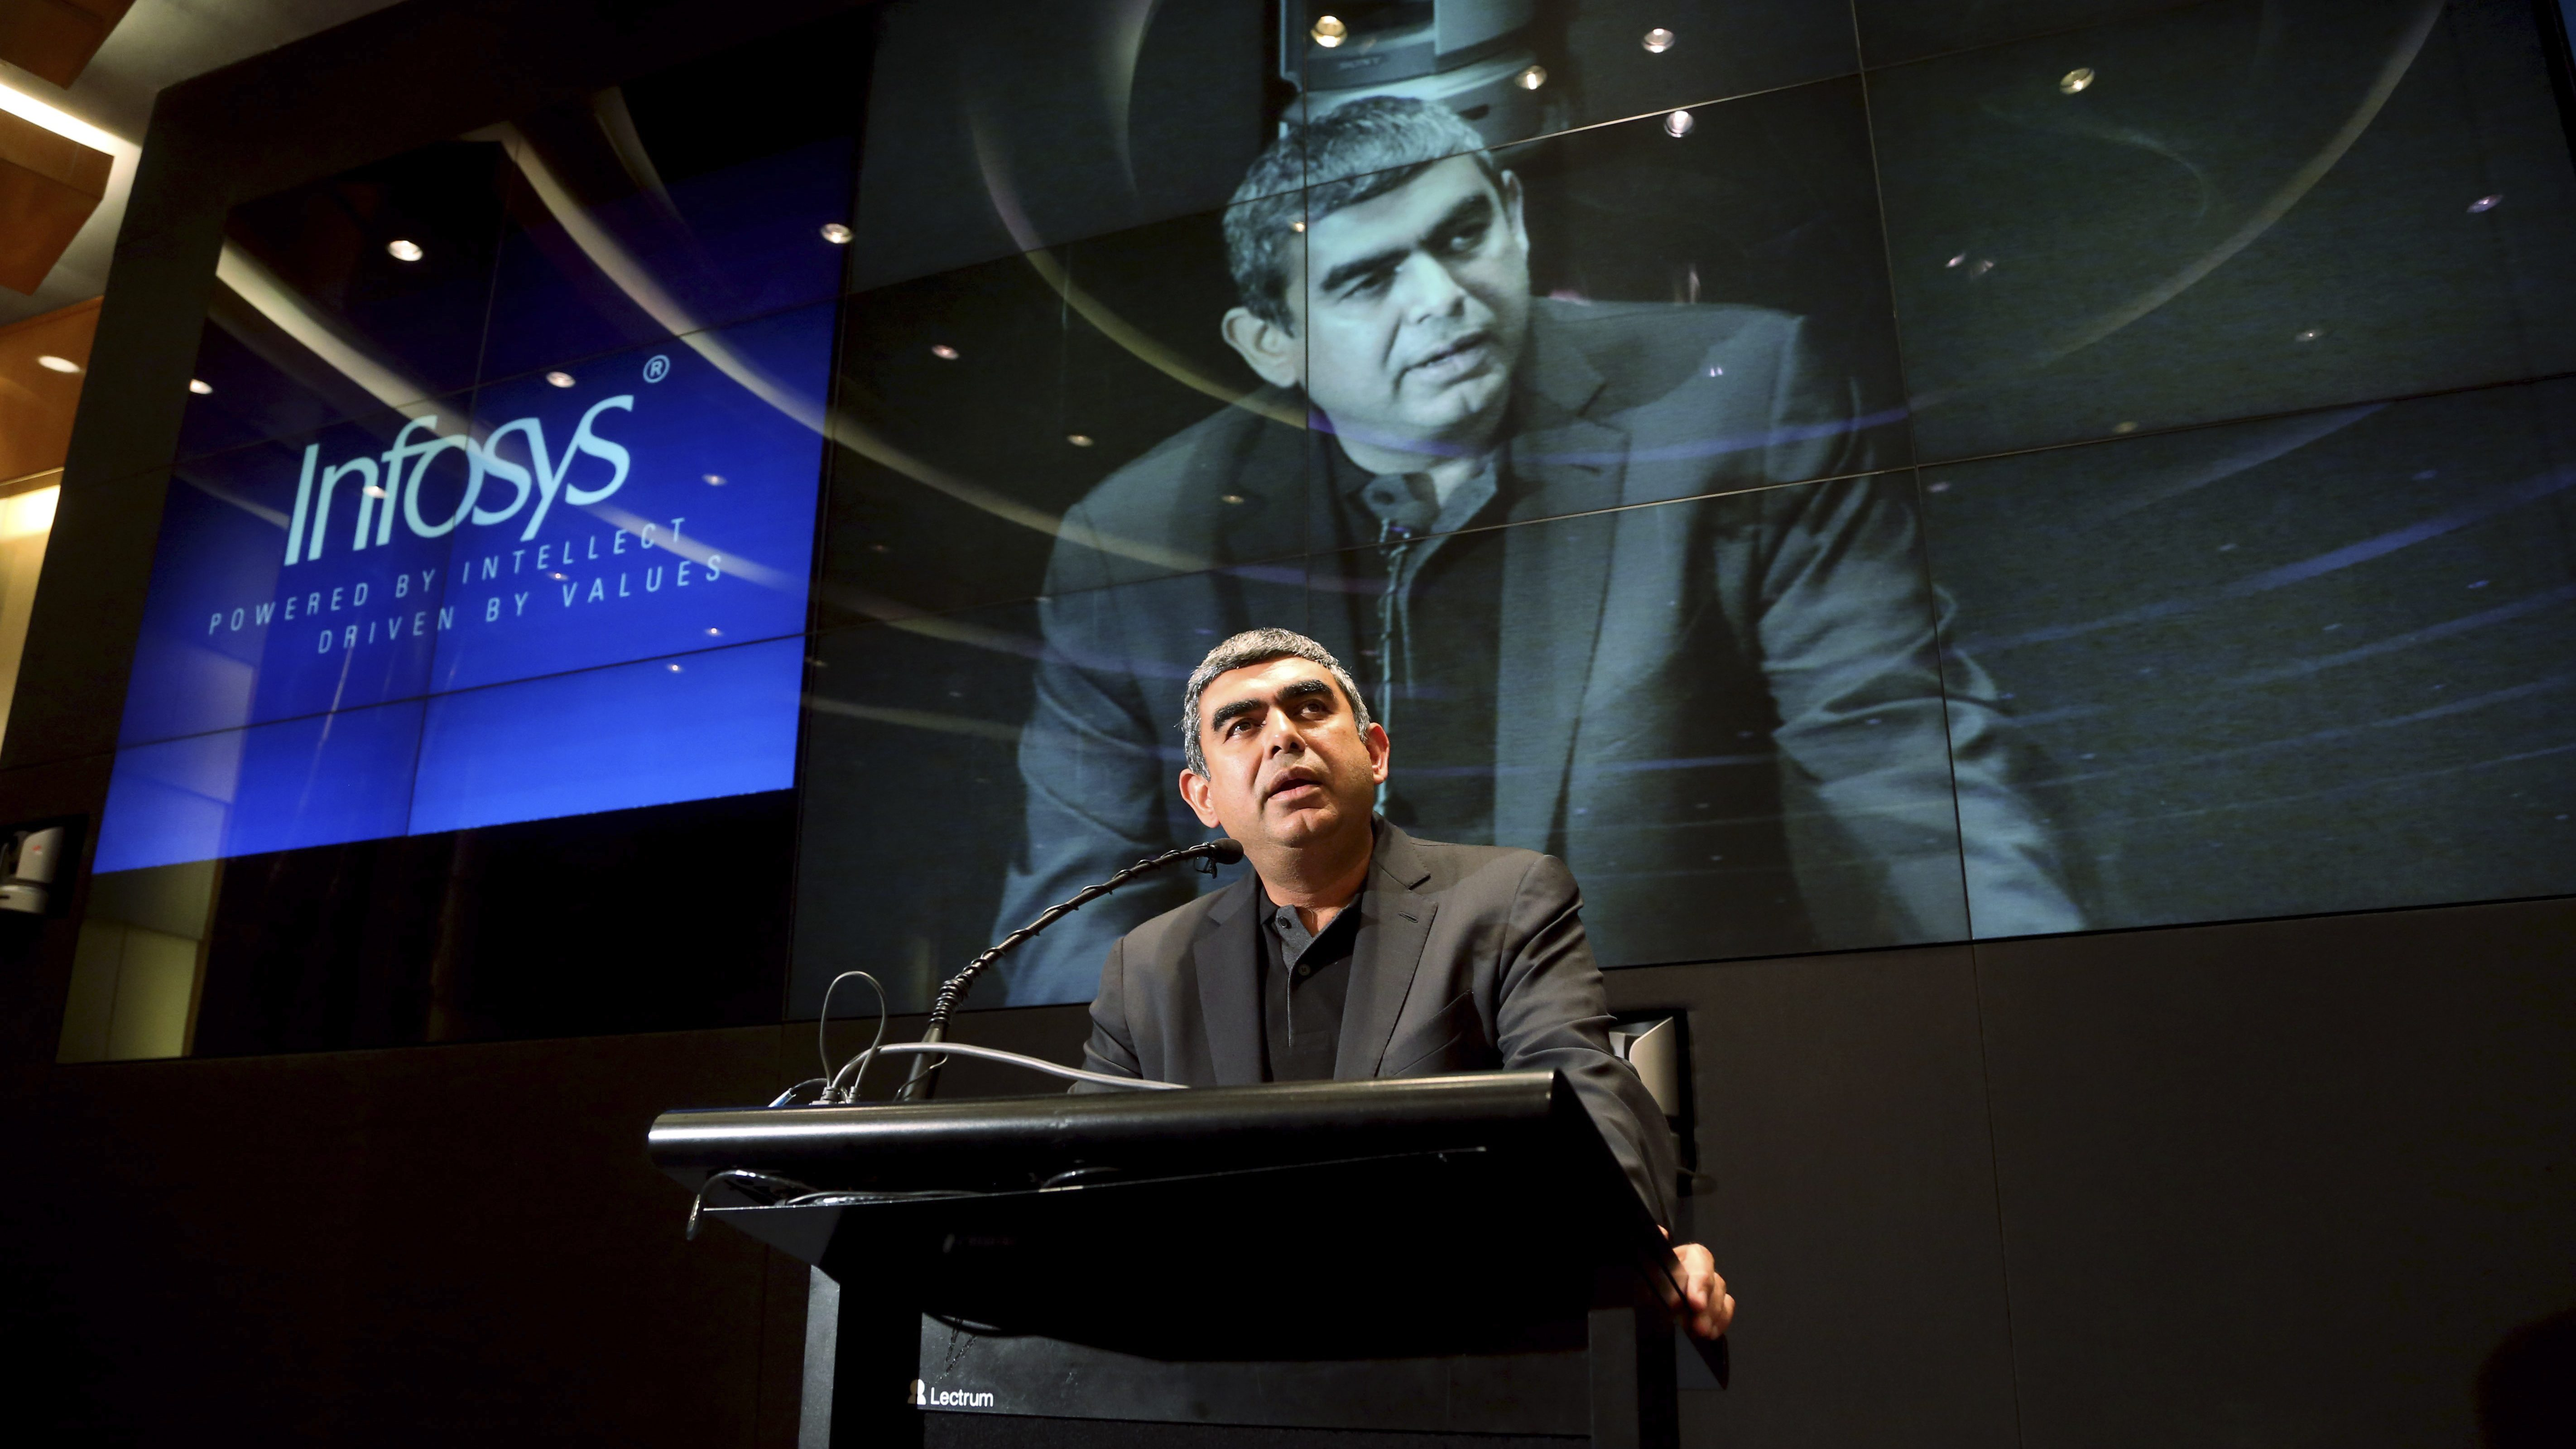 "Vishal Sikka speaks during a press conference after he was announced the new chief executive officer and managing director of Infosys at its headquarters in Bangalore, India, Thursday, June 12, 2014. Sikka said Thursday he felt honored to lead India's second-largest technology outsourcer and was looking forward to working with ""talented Infoscions"" around the world."